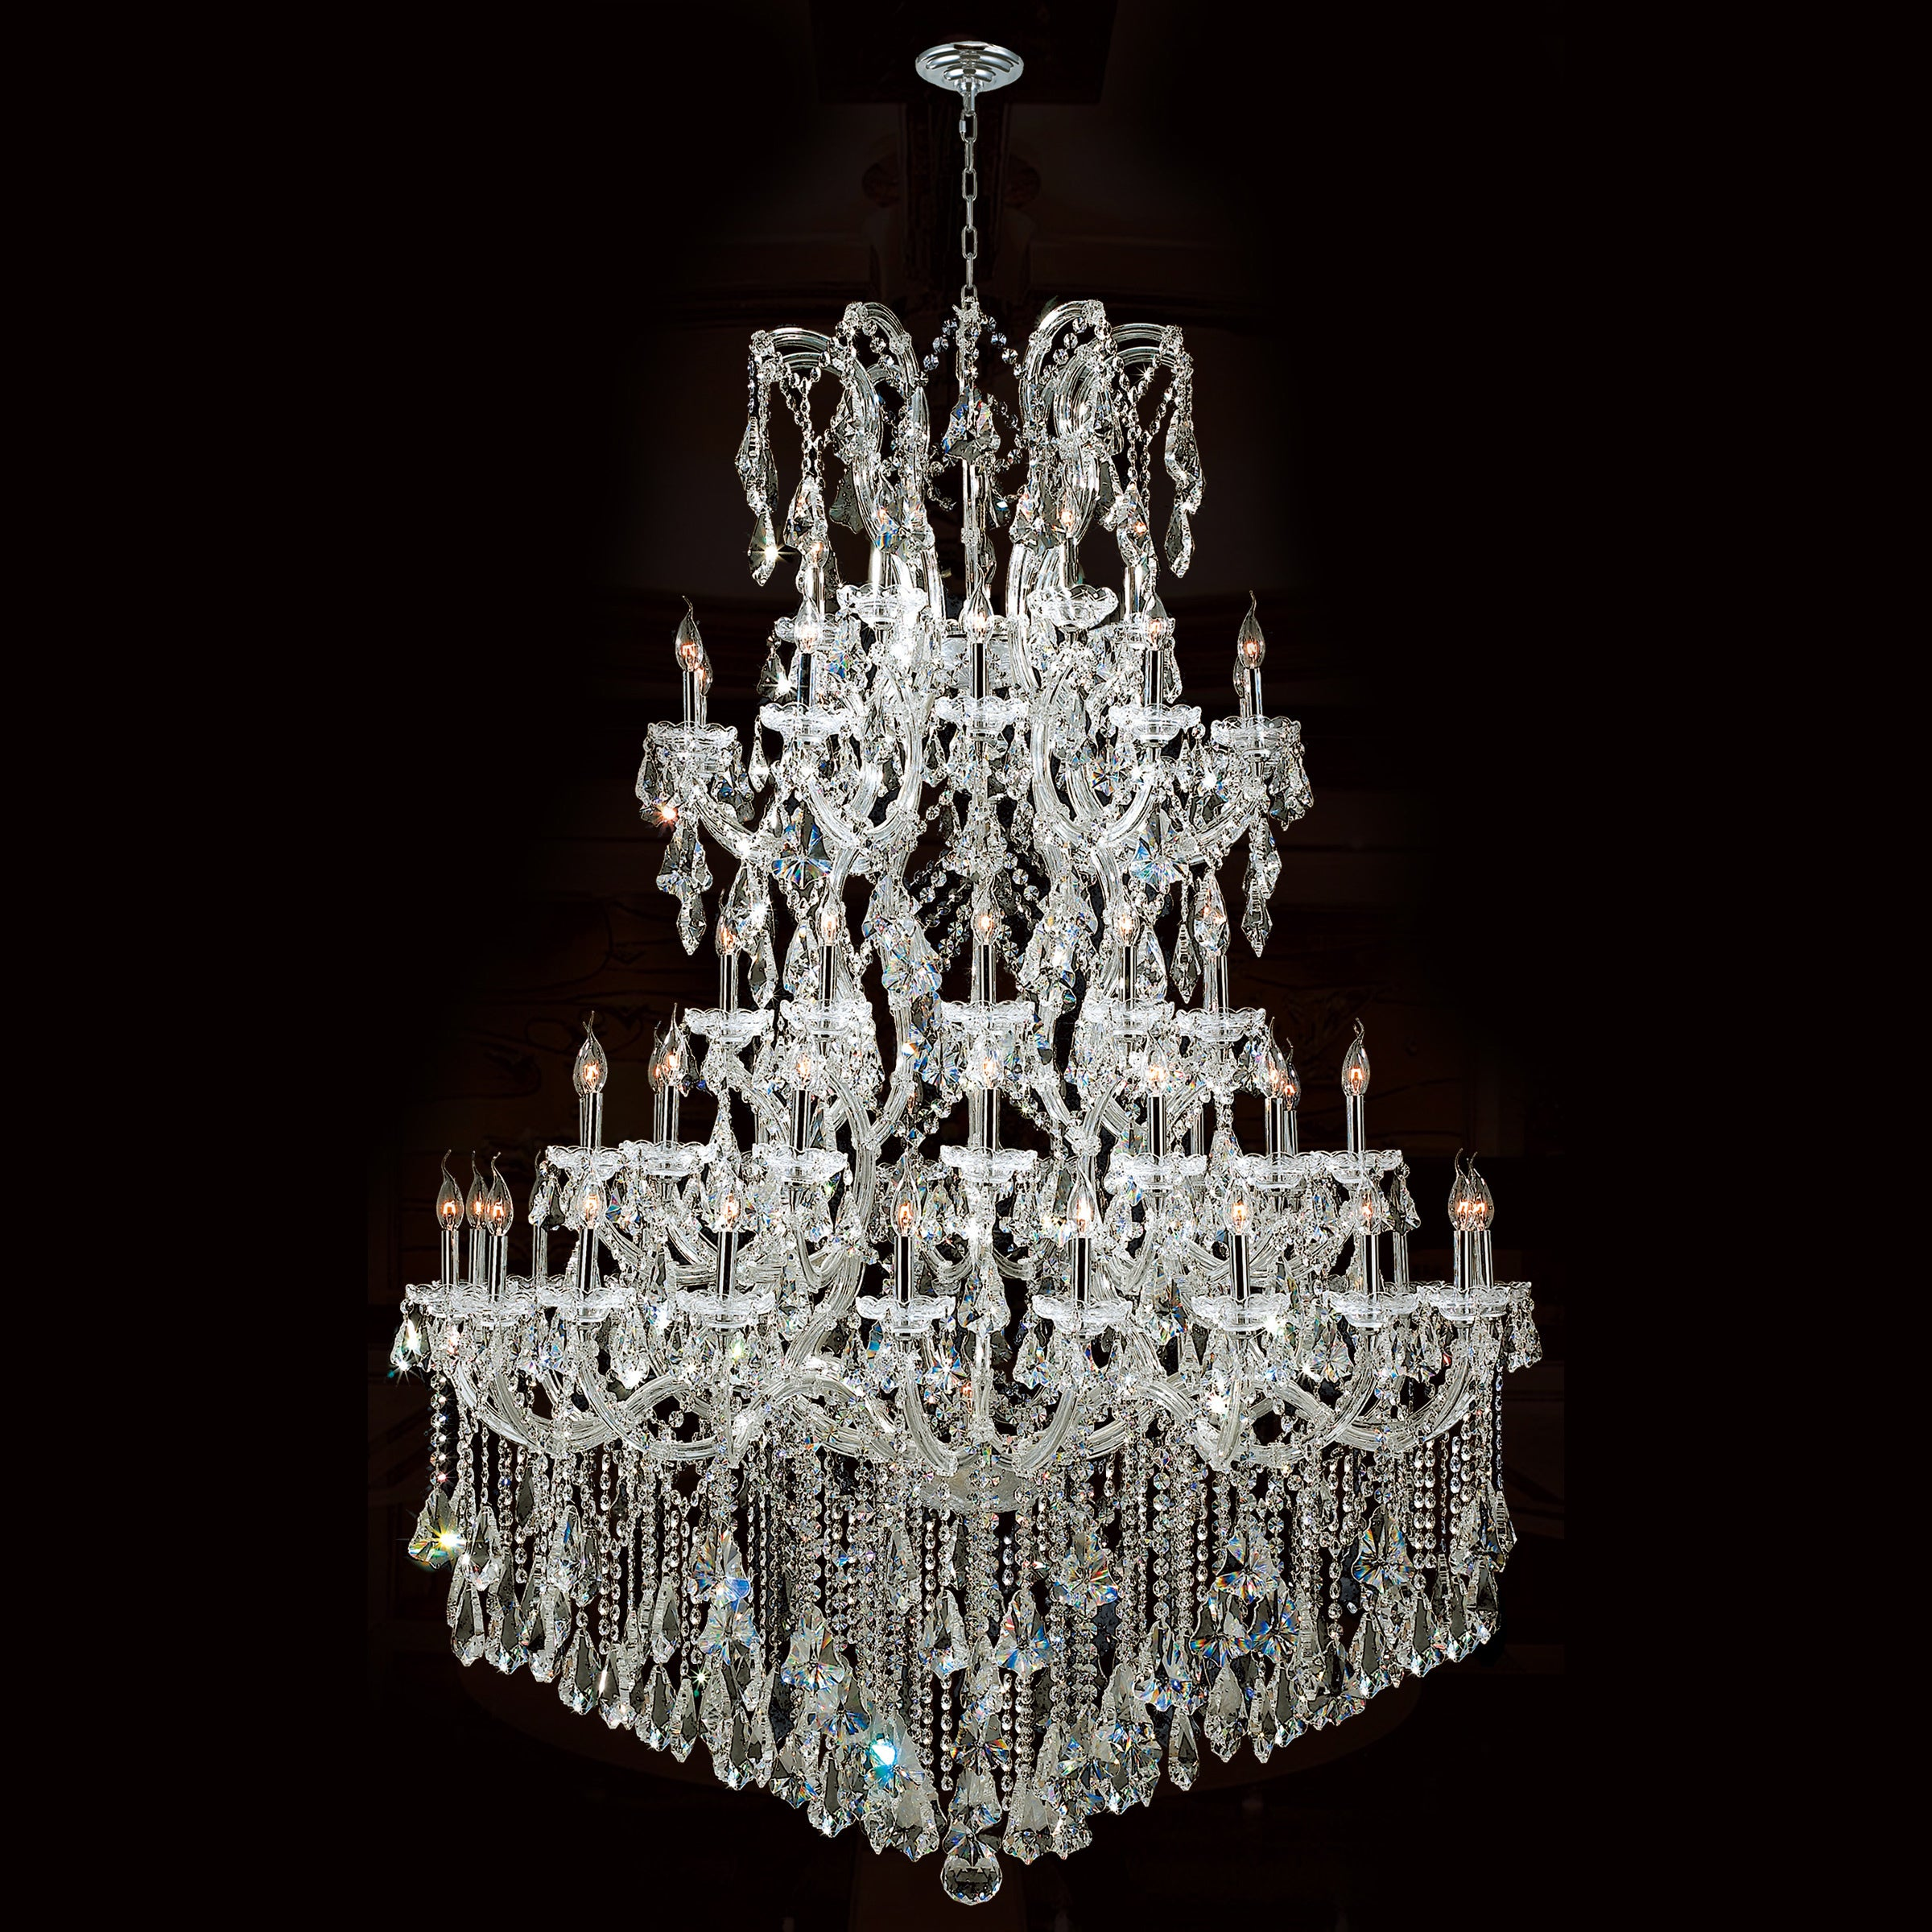 two chandeliers l of crystal chandelier large com with pair sold items light a pixball